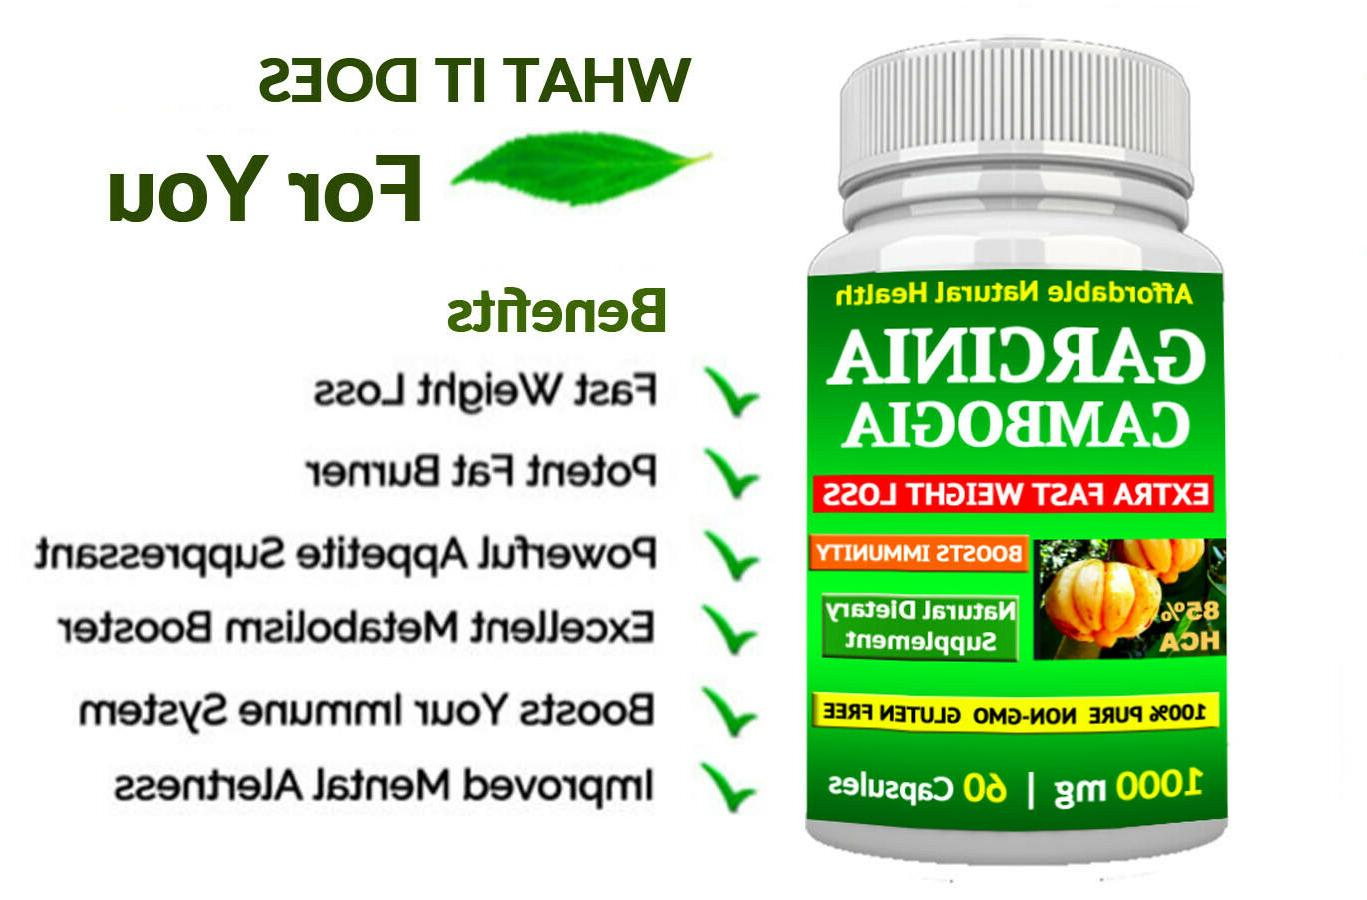 1 PURE GARCINIA EXTRACT NATURAL 85% HCA DIET FAT